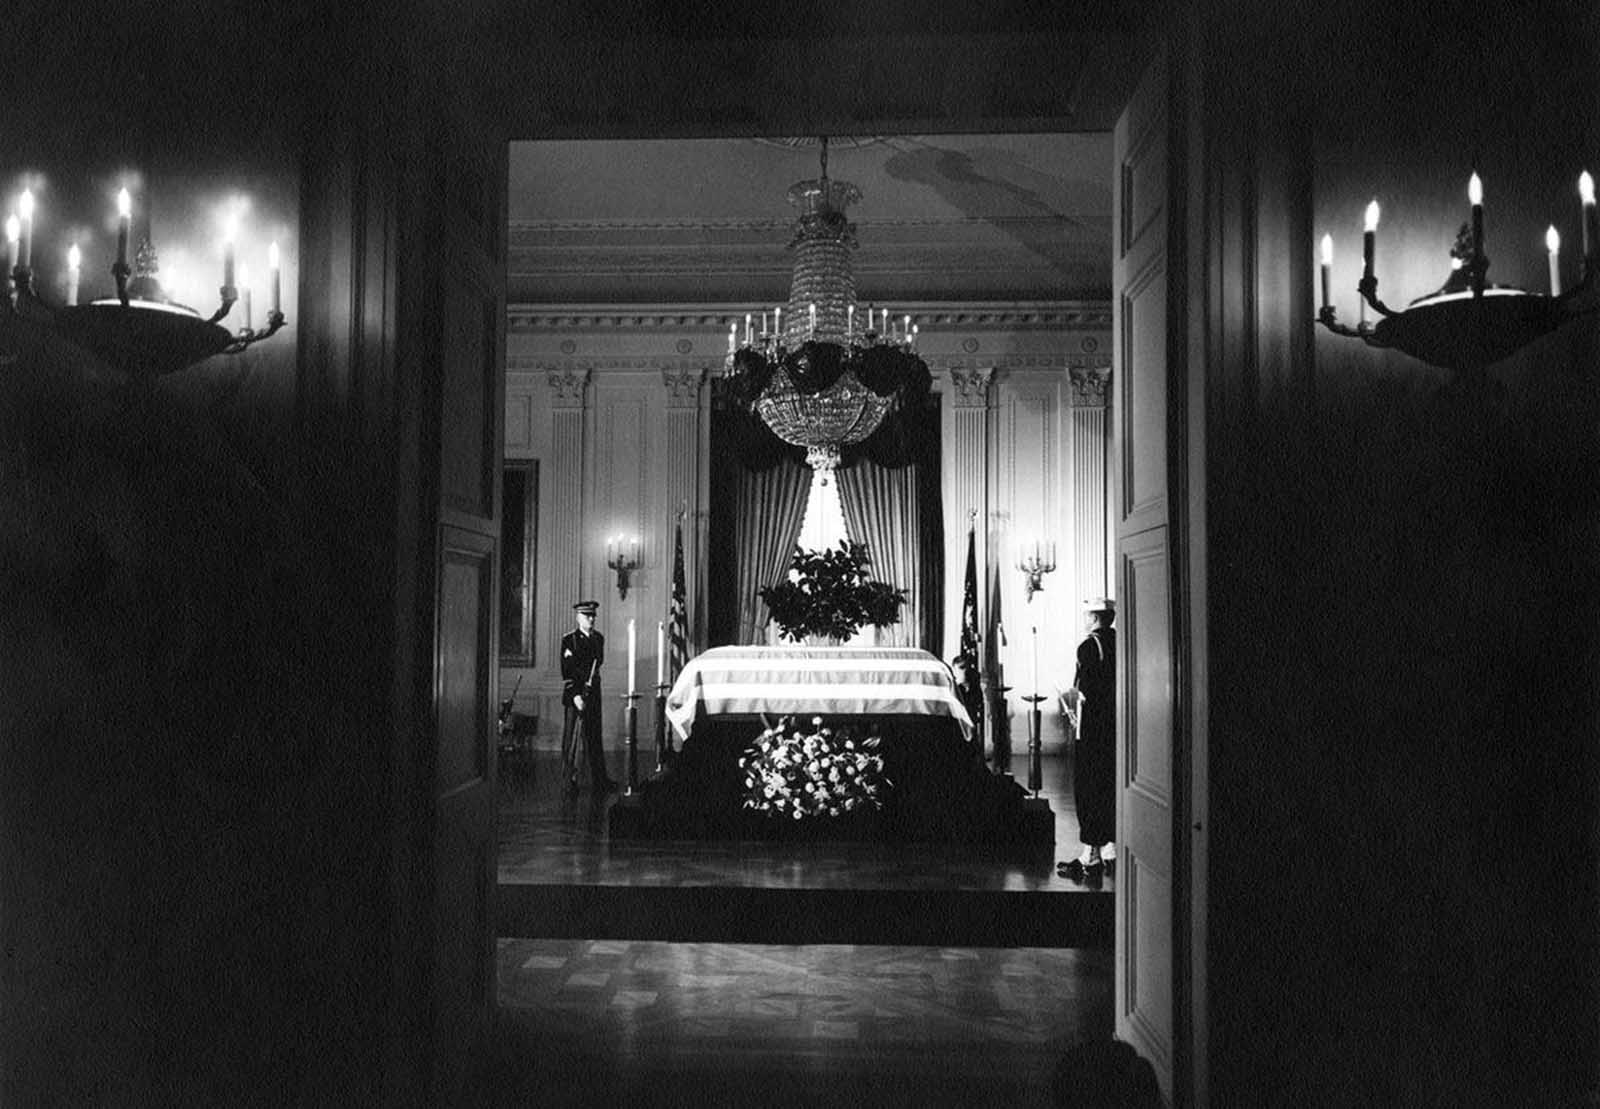 Kennedy's casket lying in state in the East Room of the White house, before it was moved to the Capitol Rotunda.